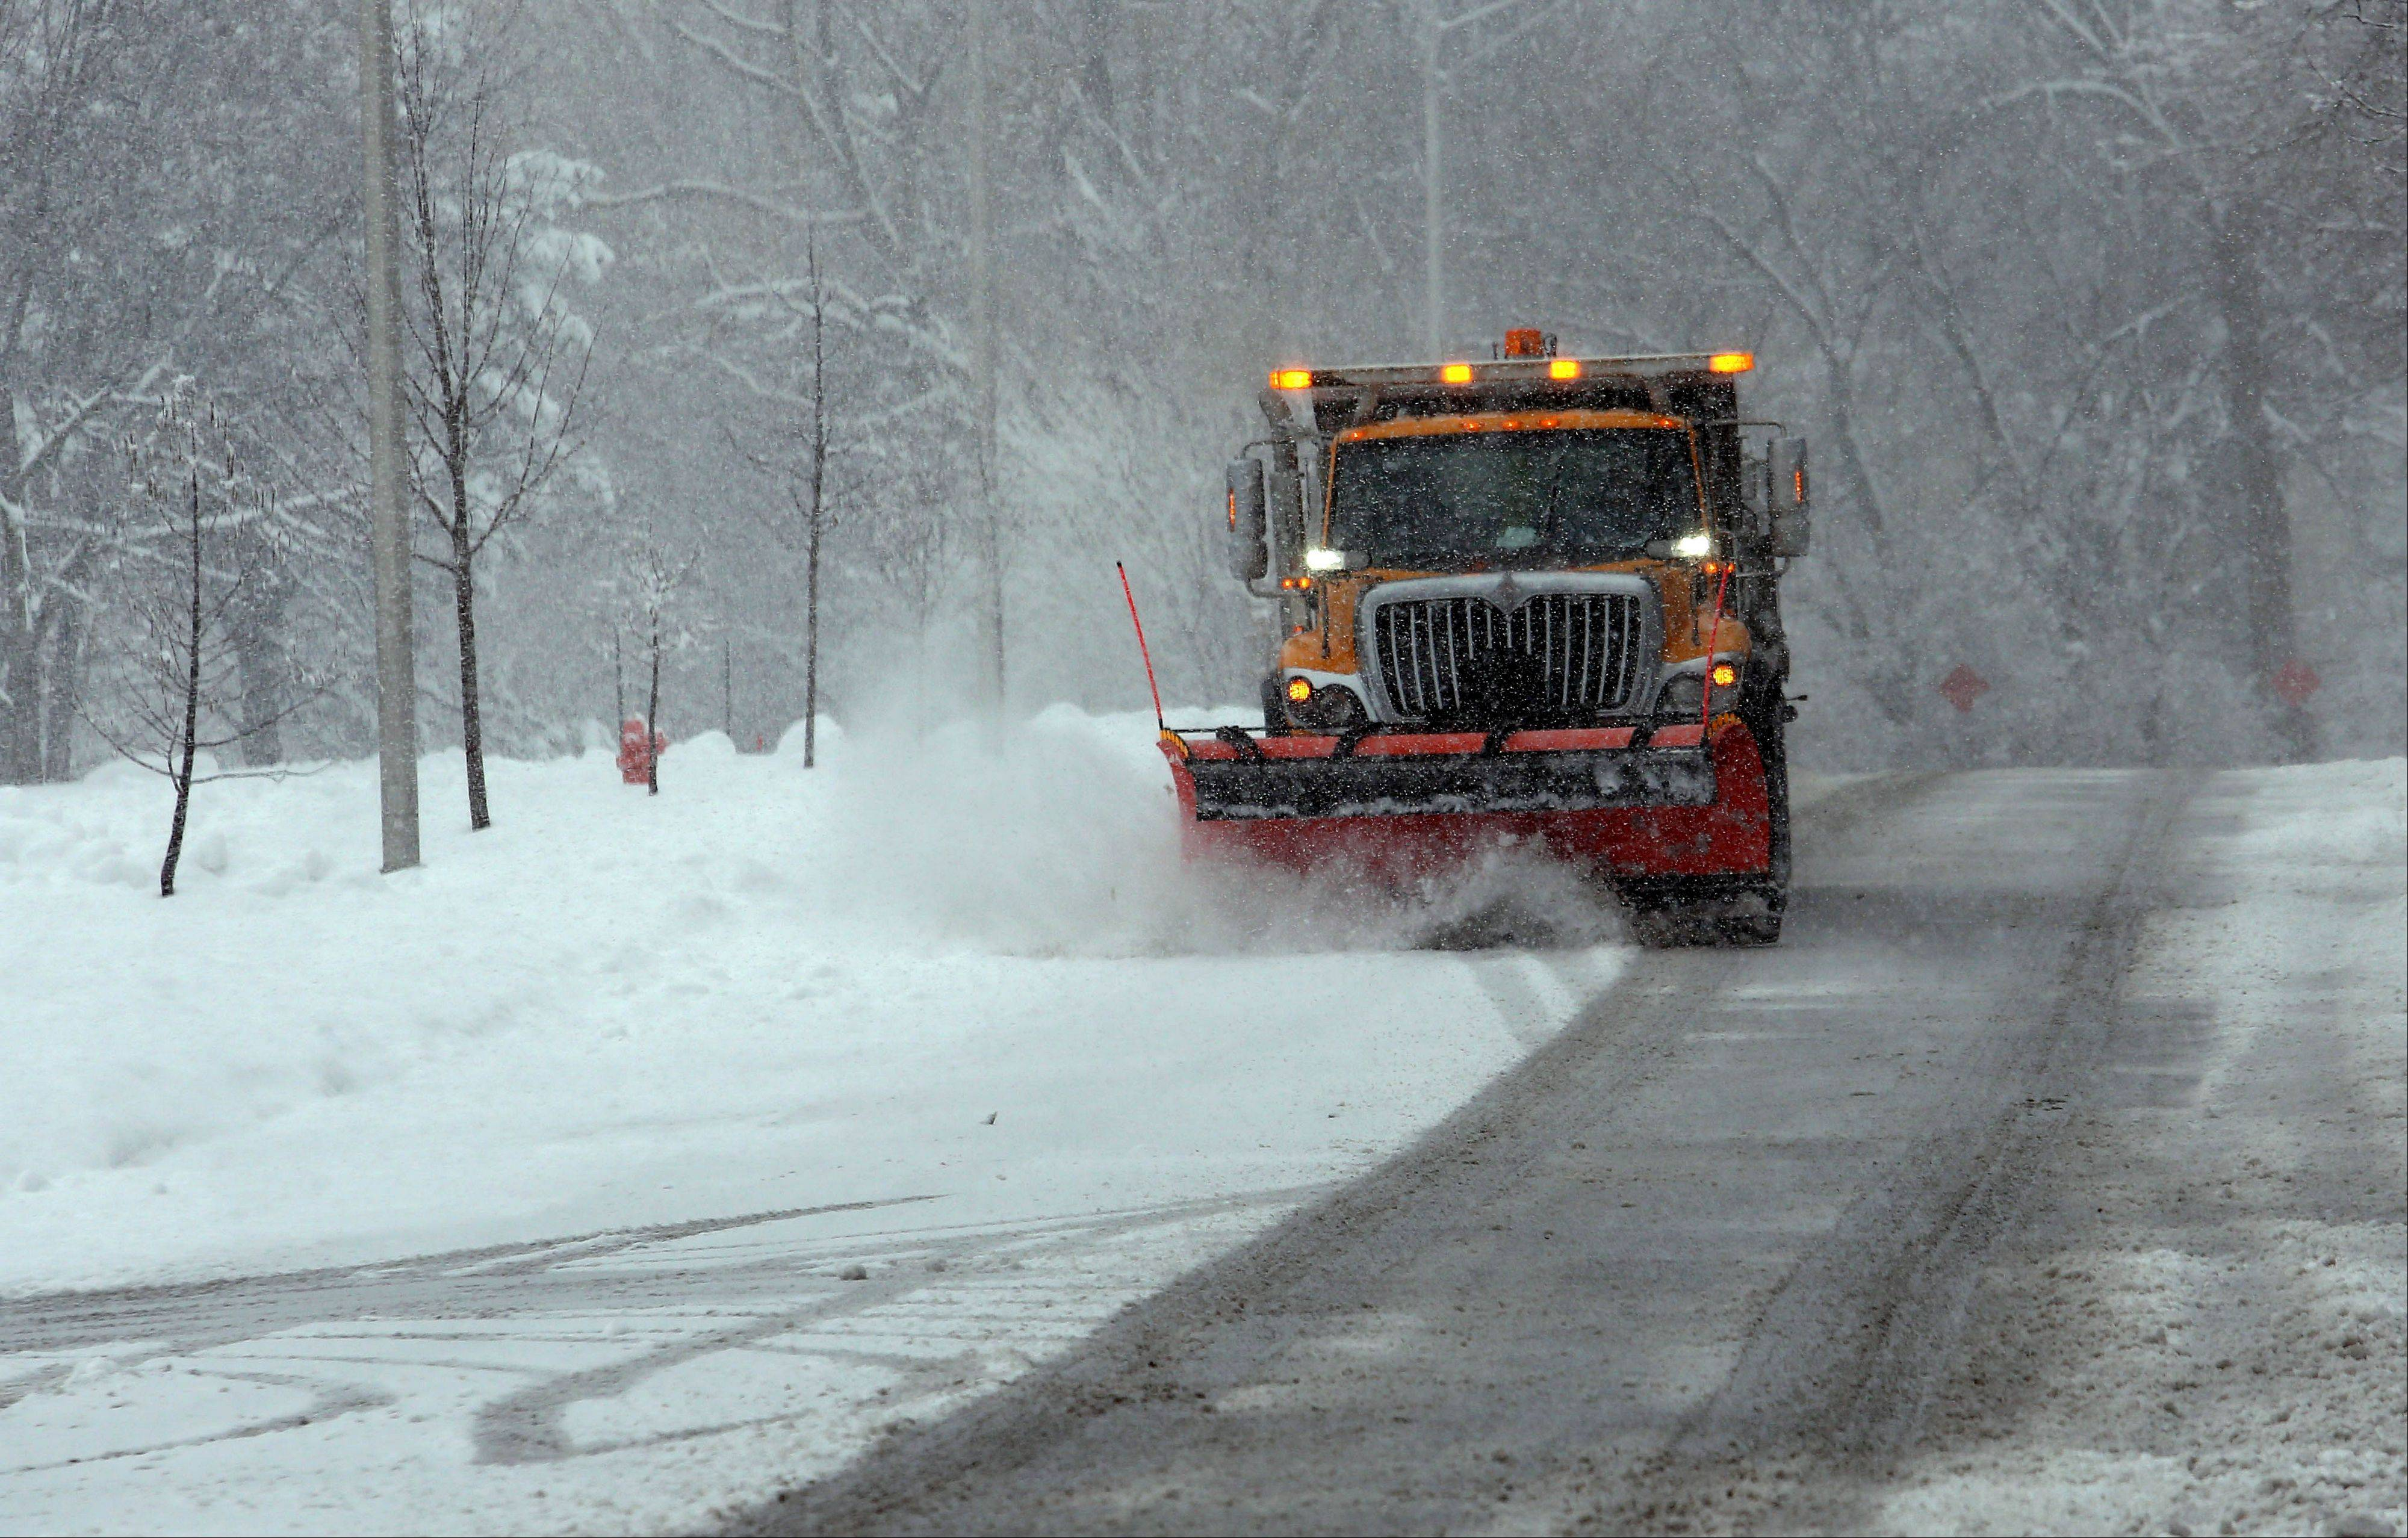 Snow plowing, salt costs piling up in Naperville